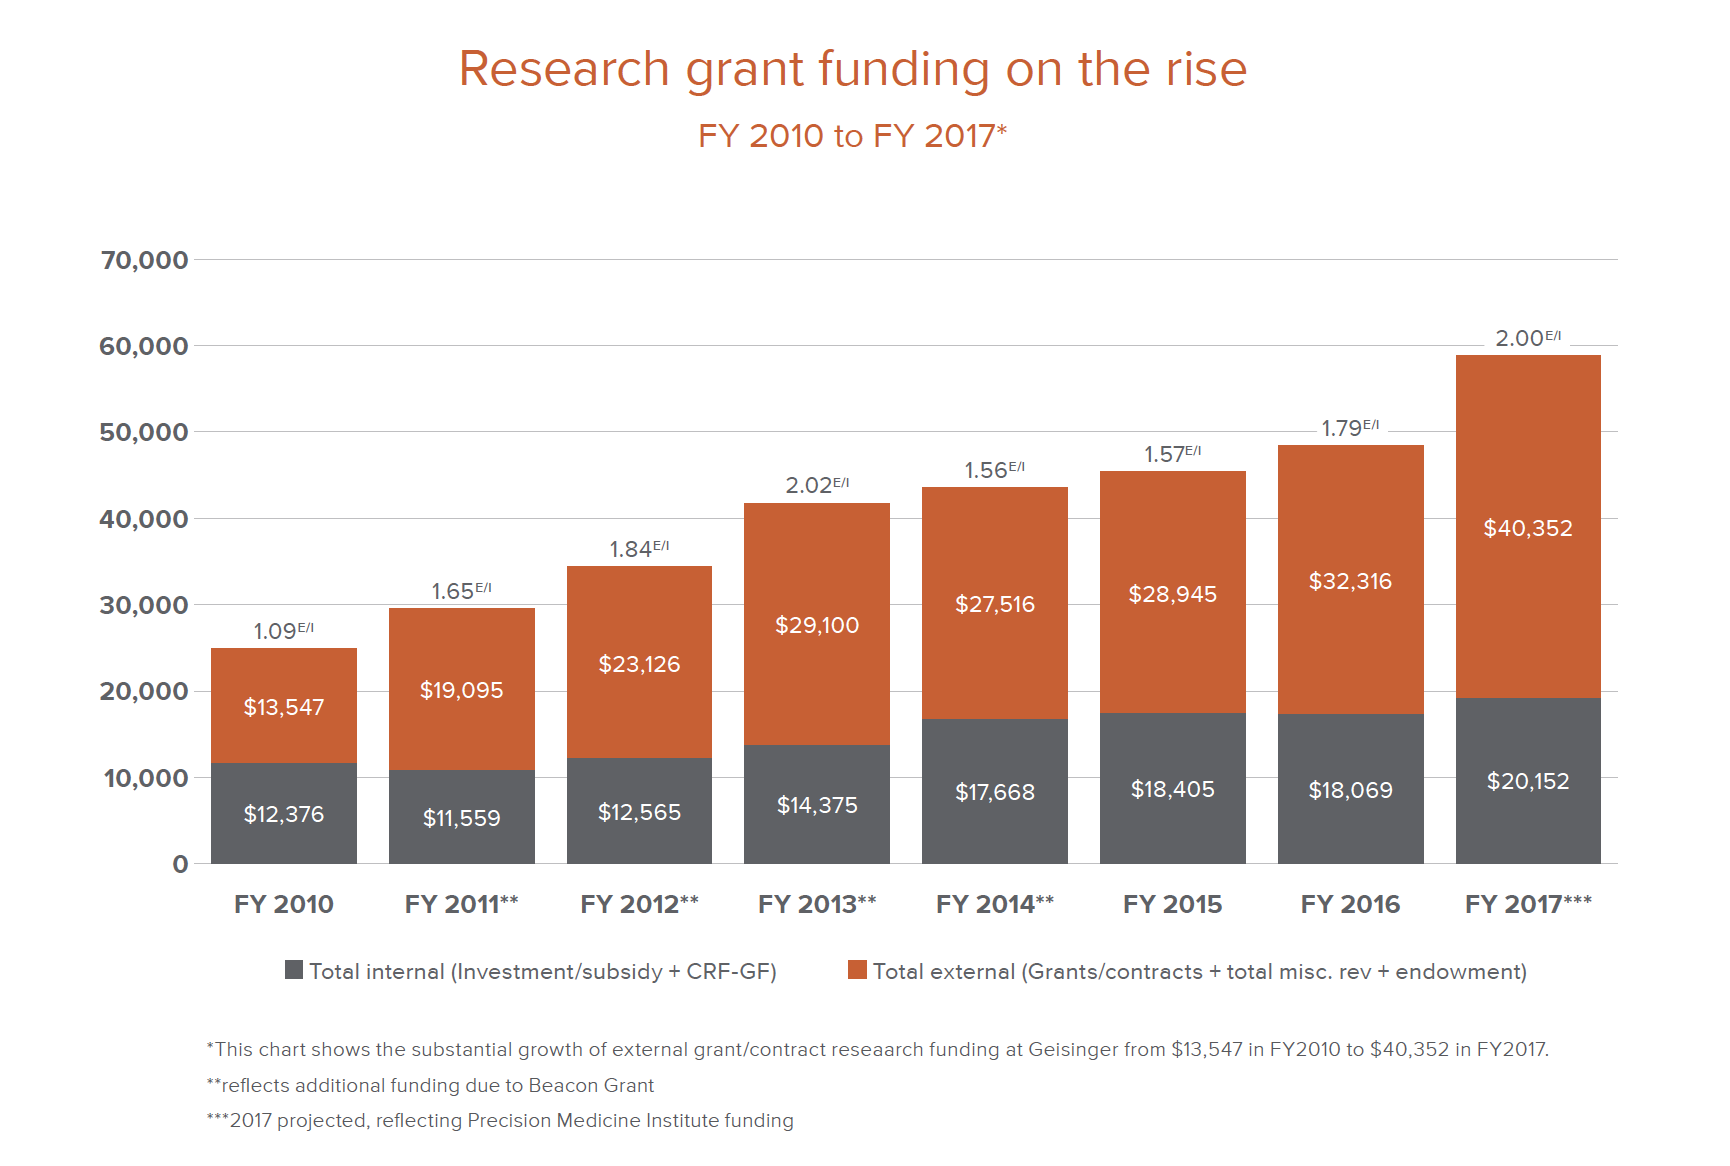 Research grant funding on the rise